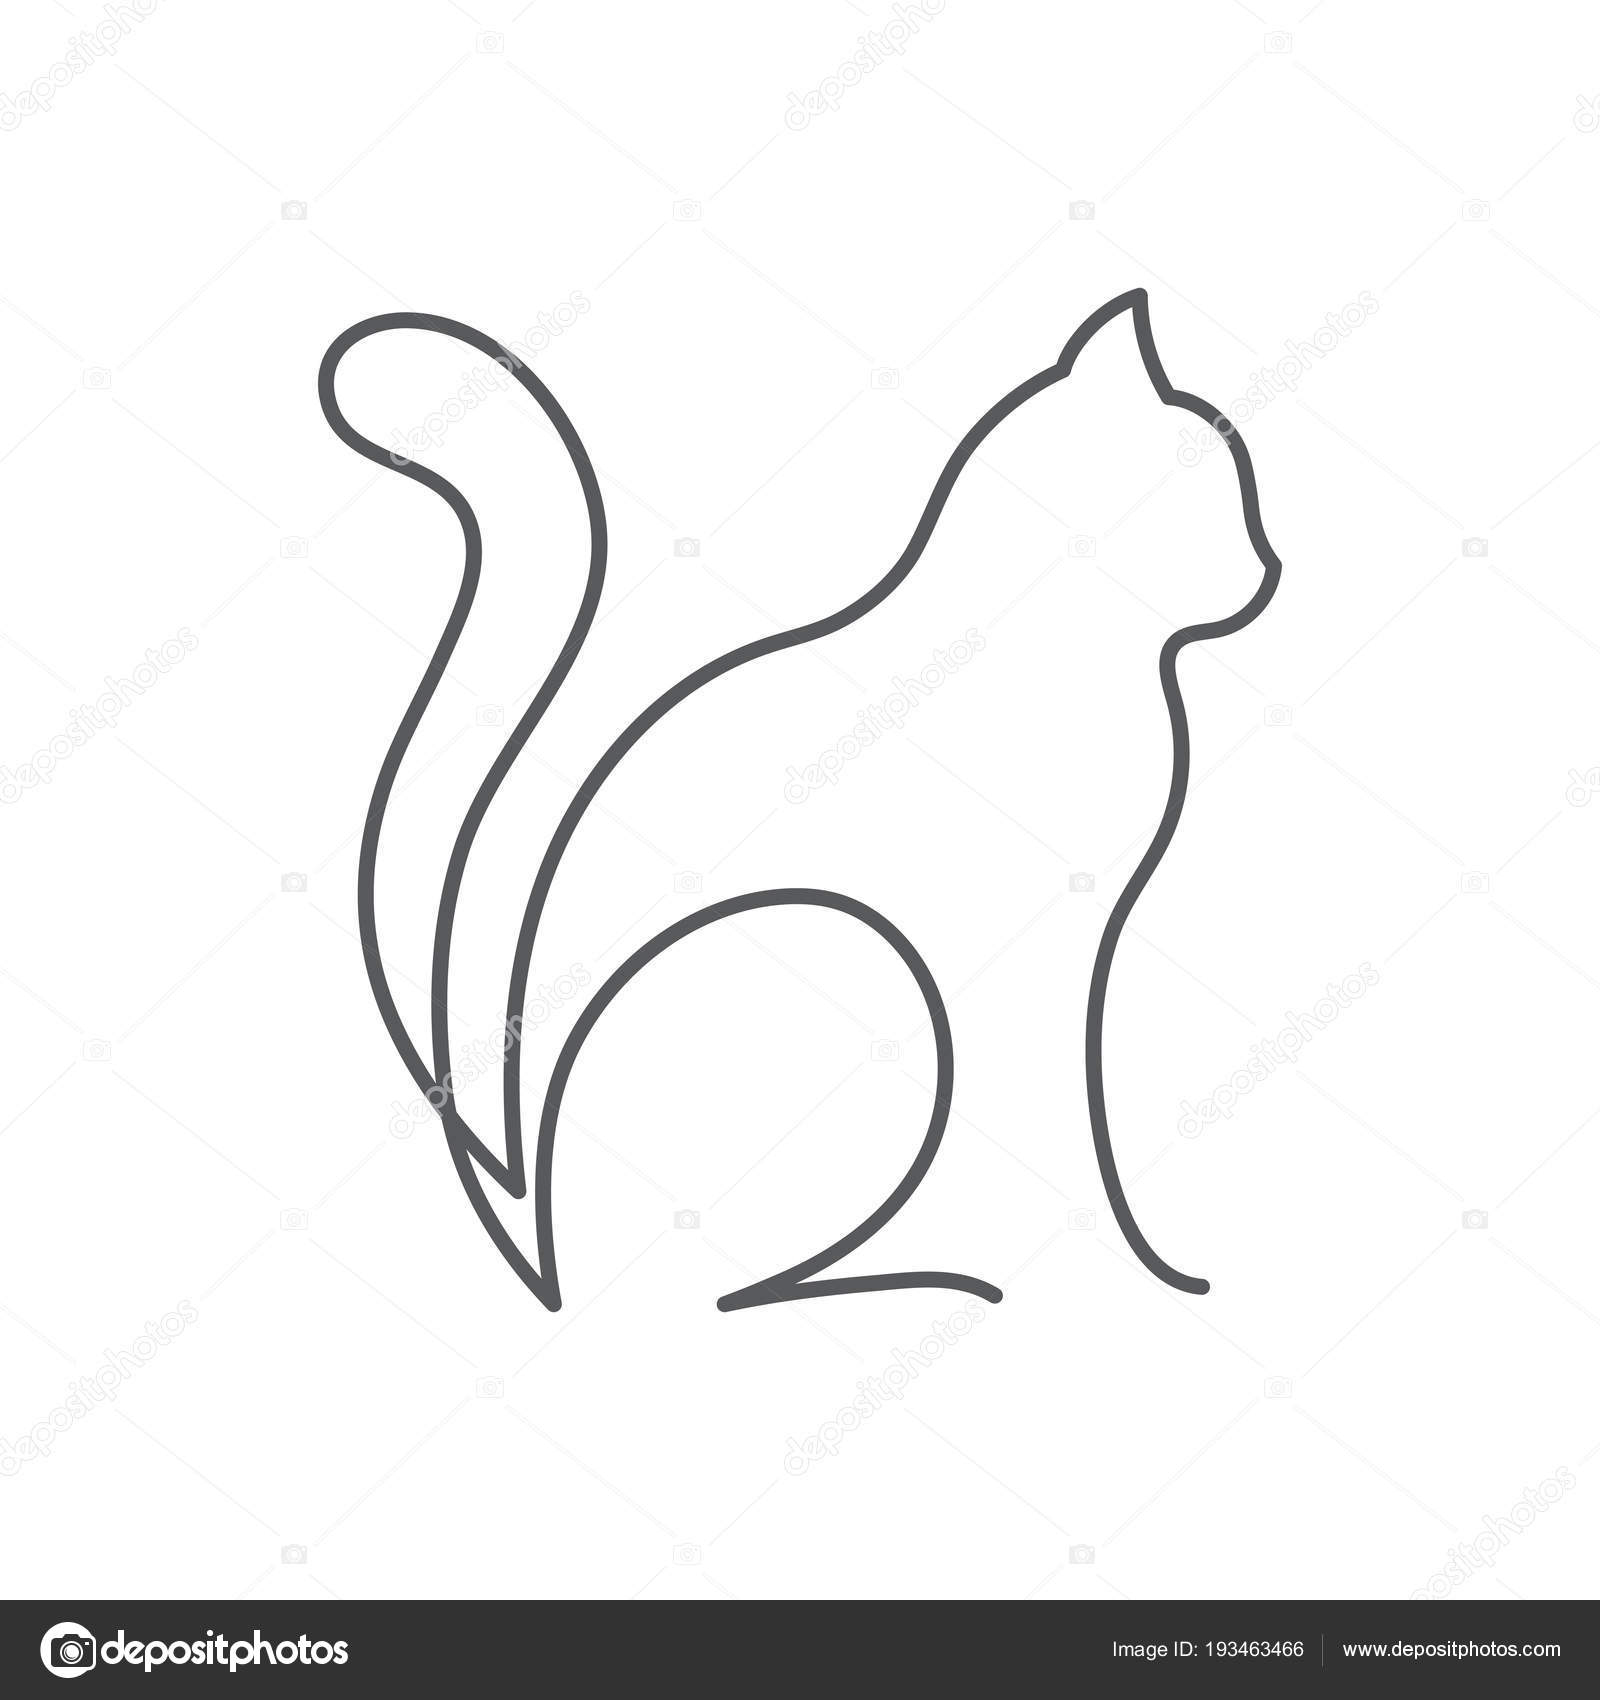 Dessin Au Trait Continu Chat Animal Mignon Est Assis Avec